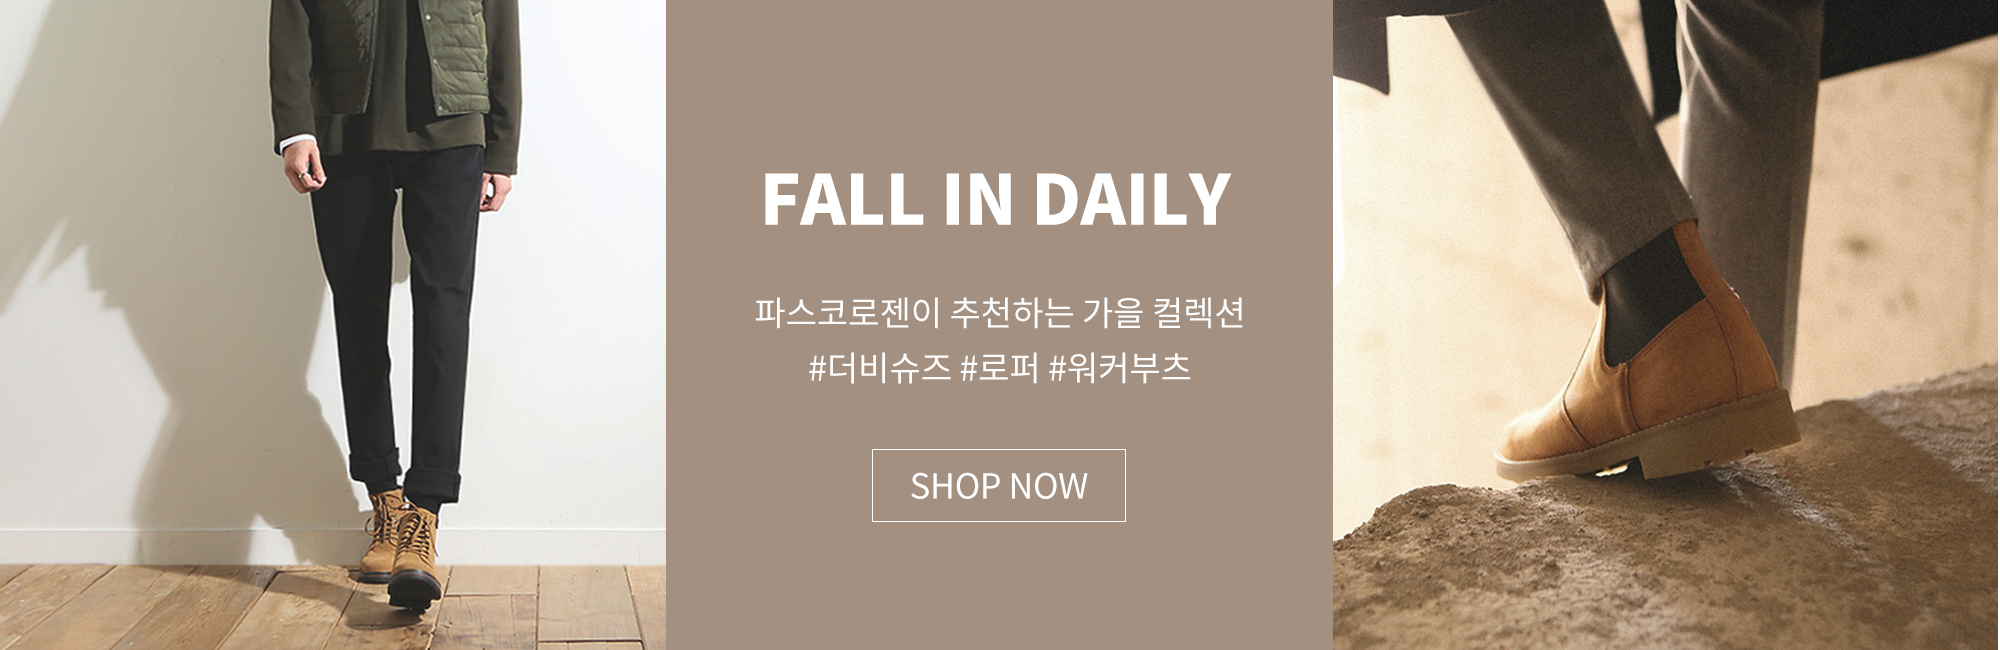 fall in daily